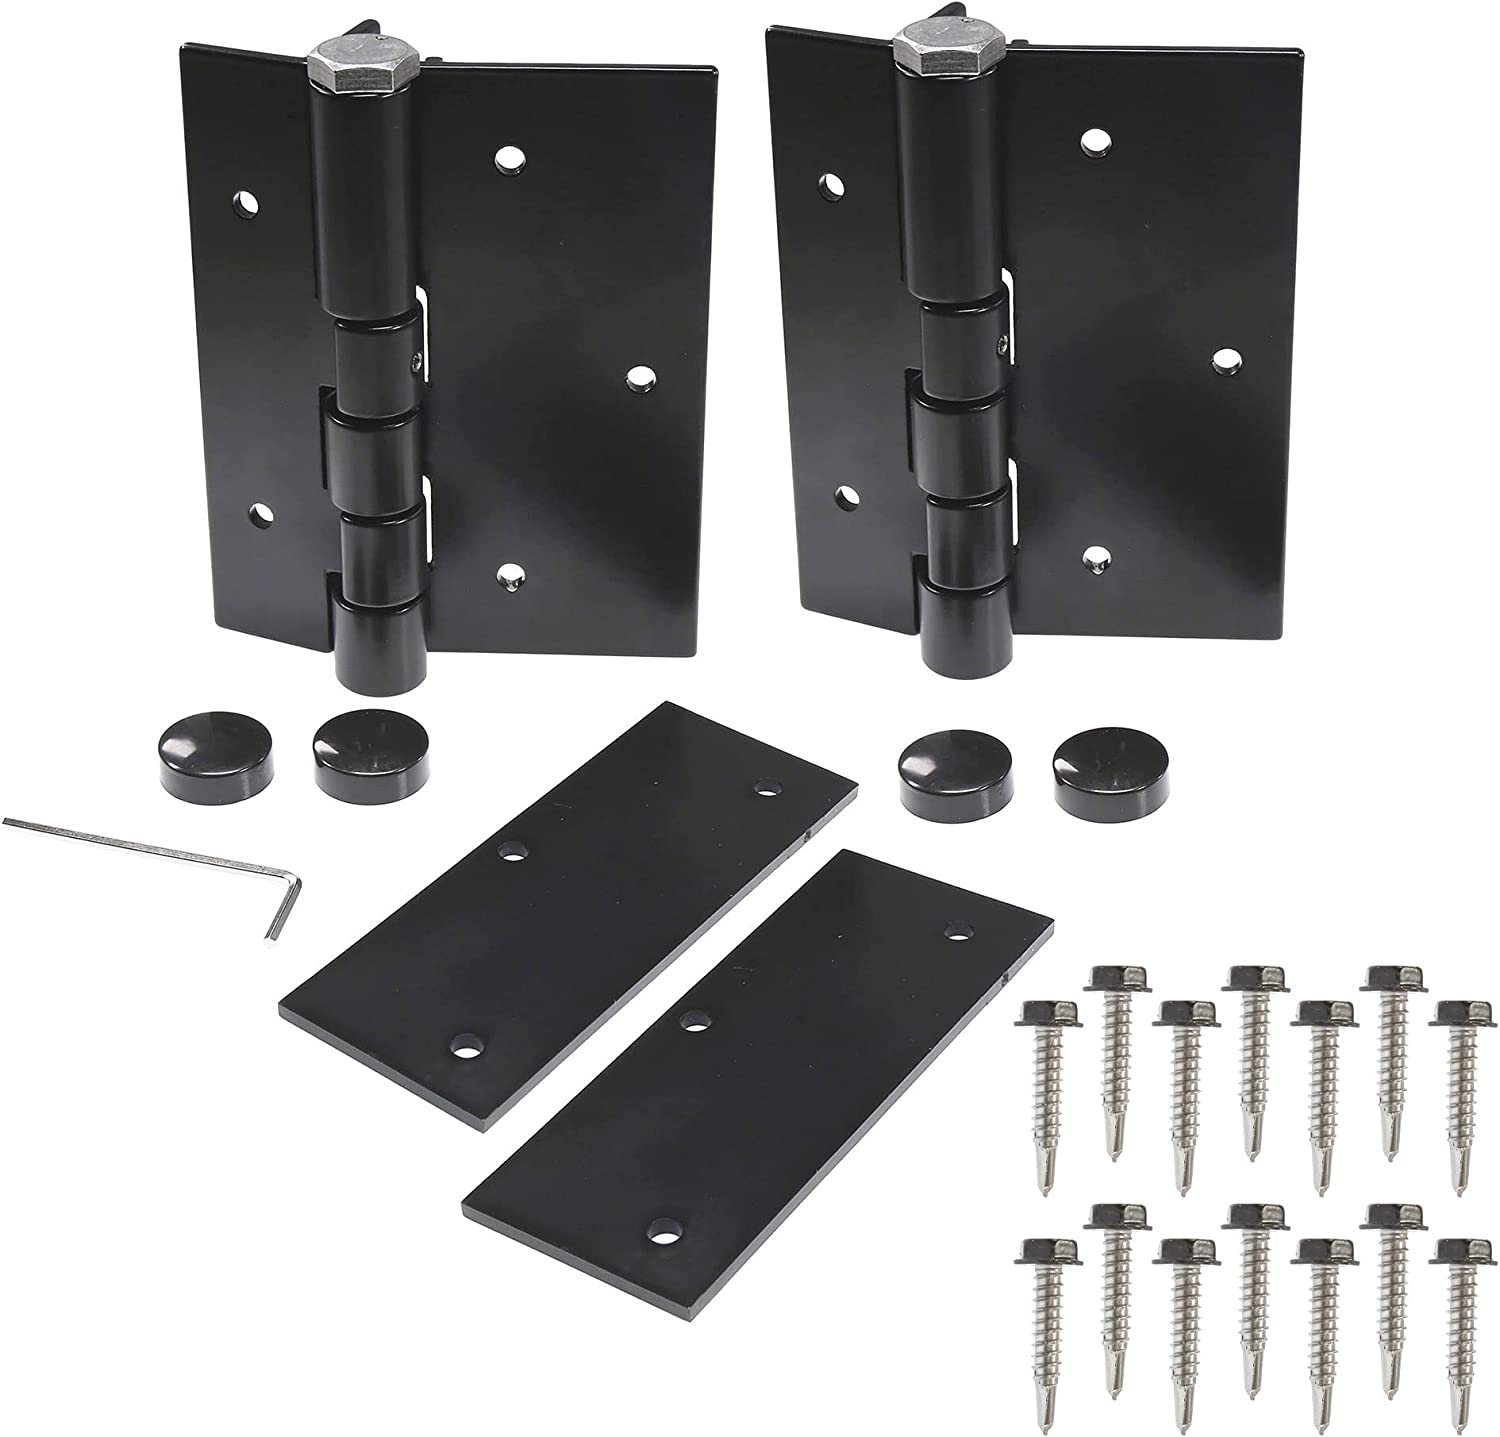 Plum Fittings Pair Challenge the lowest price of Max 47% OFF Aluminum Black Self-Closing Hin Gate Fence